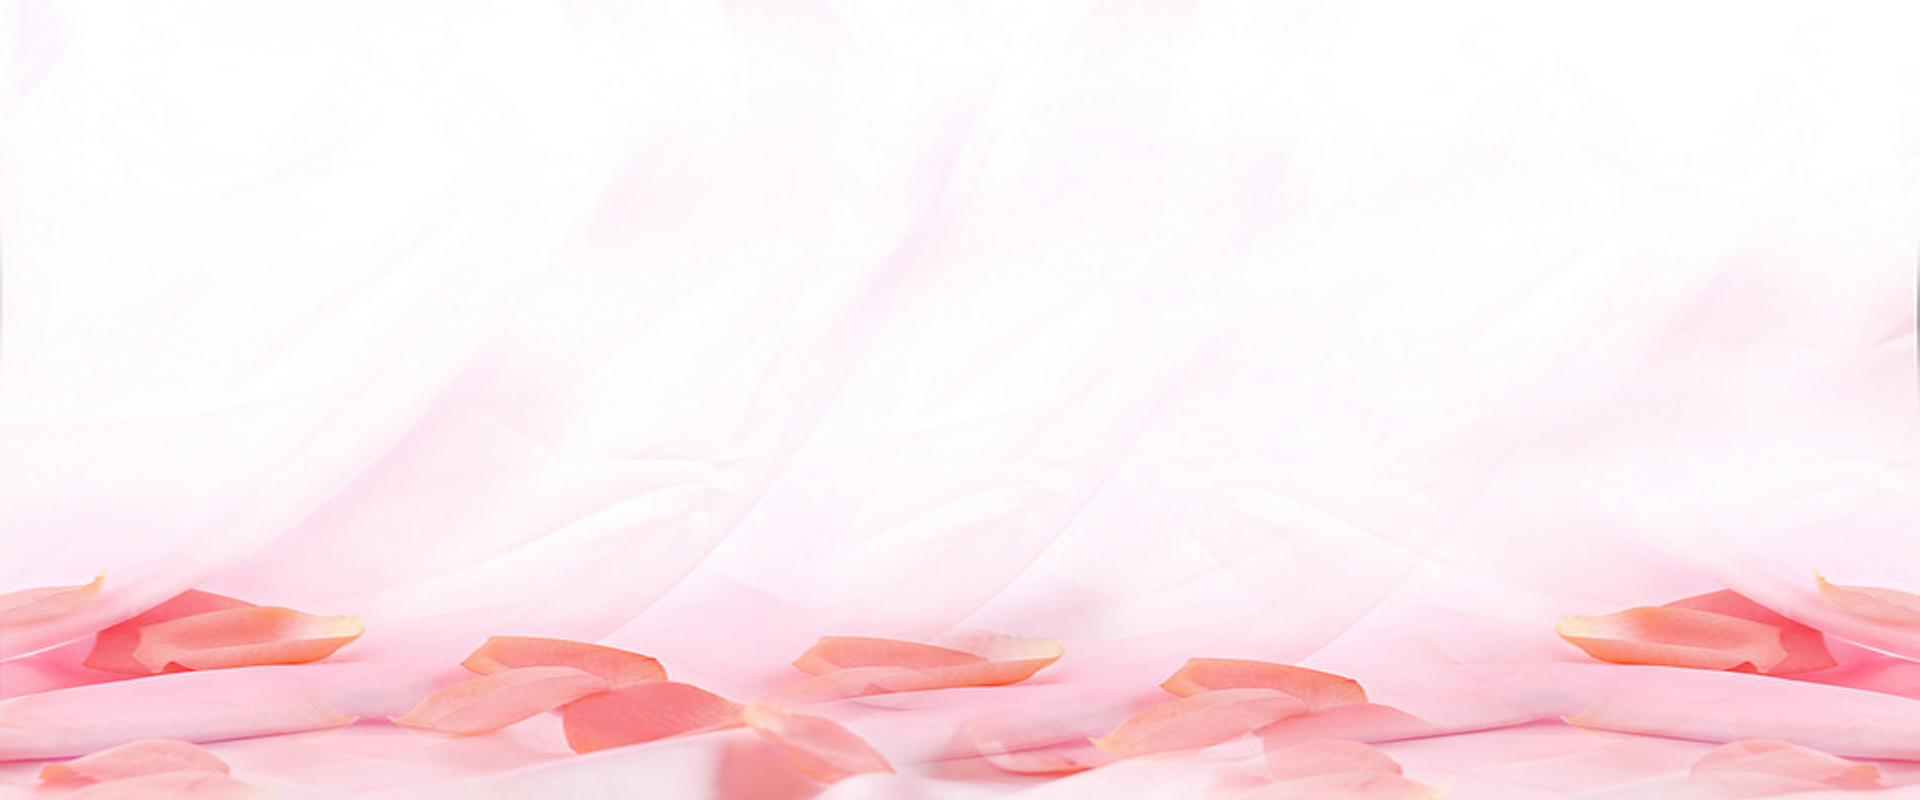 cosmetics hd background material cosmetic lynx pink